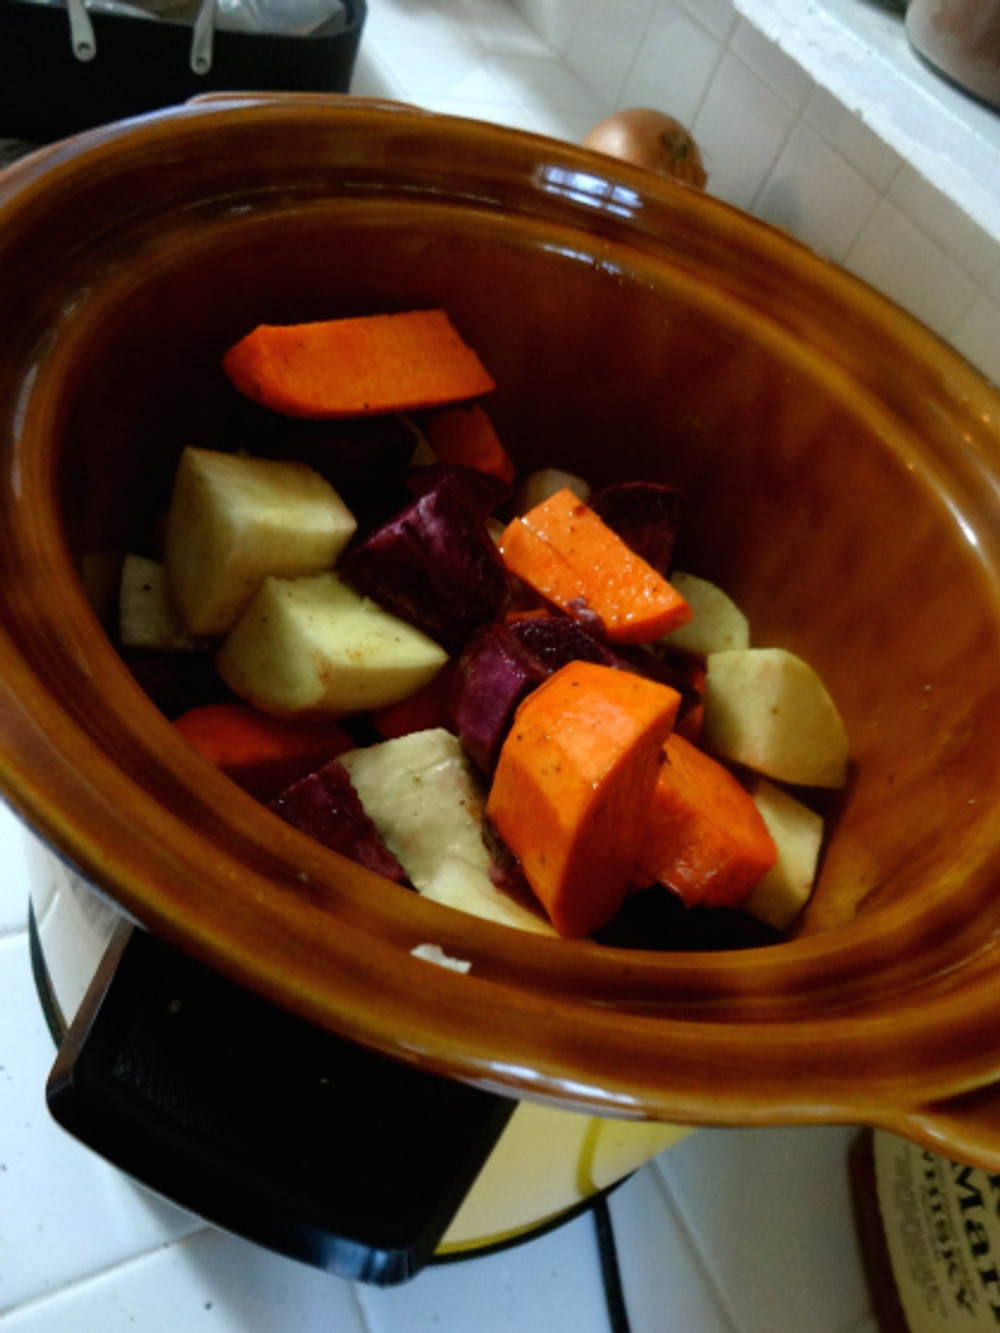 We are huge sweet potato / yam fans but I didn't want to take up valuable oven space nor make them ahead, so was in heaven finding this Southern Candied Yams recipe that I could make in the crock pot!